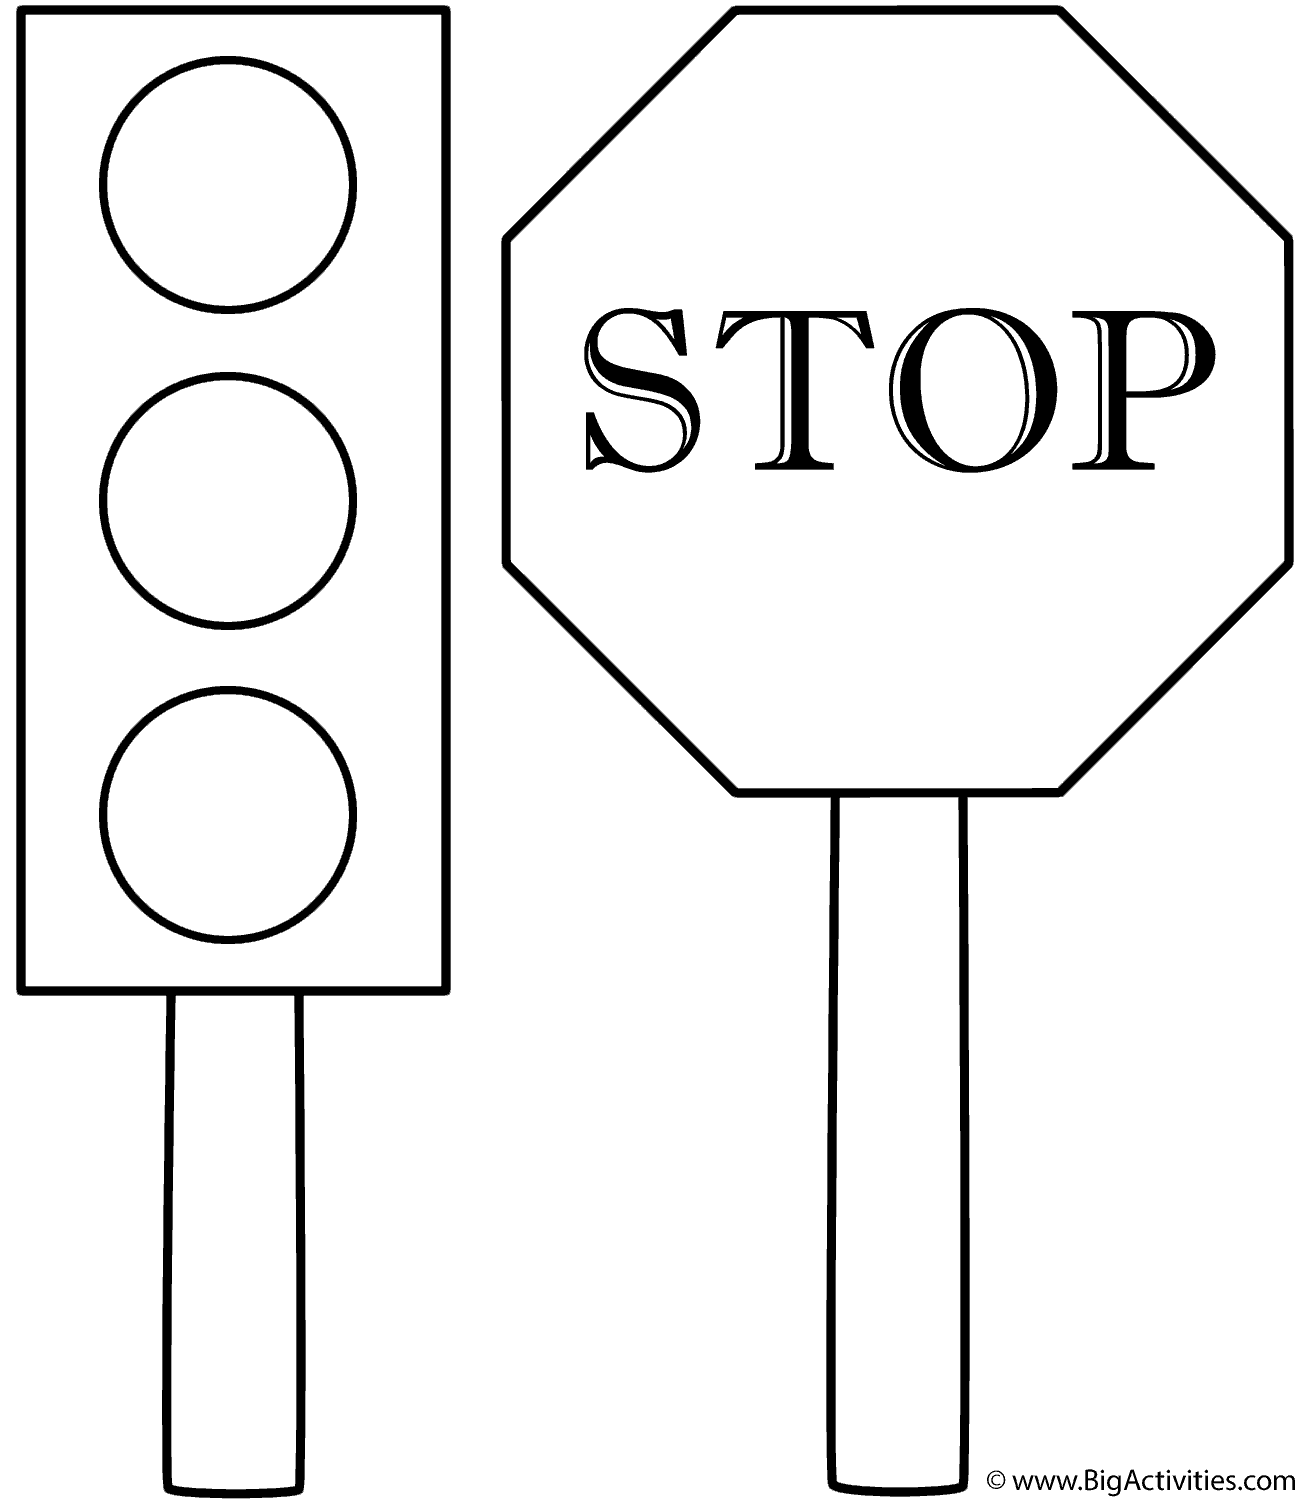 printable traffic signs coloring pages 6 best images of road signs printable coloring pages pages traffic signs printable coloring